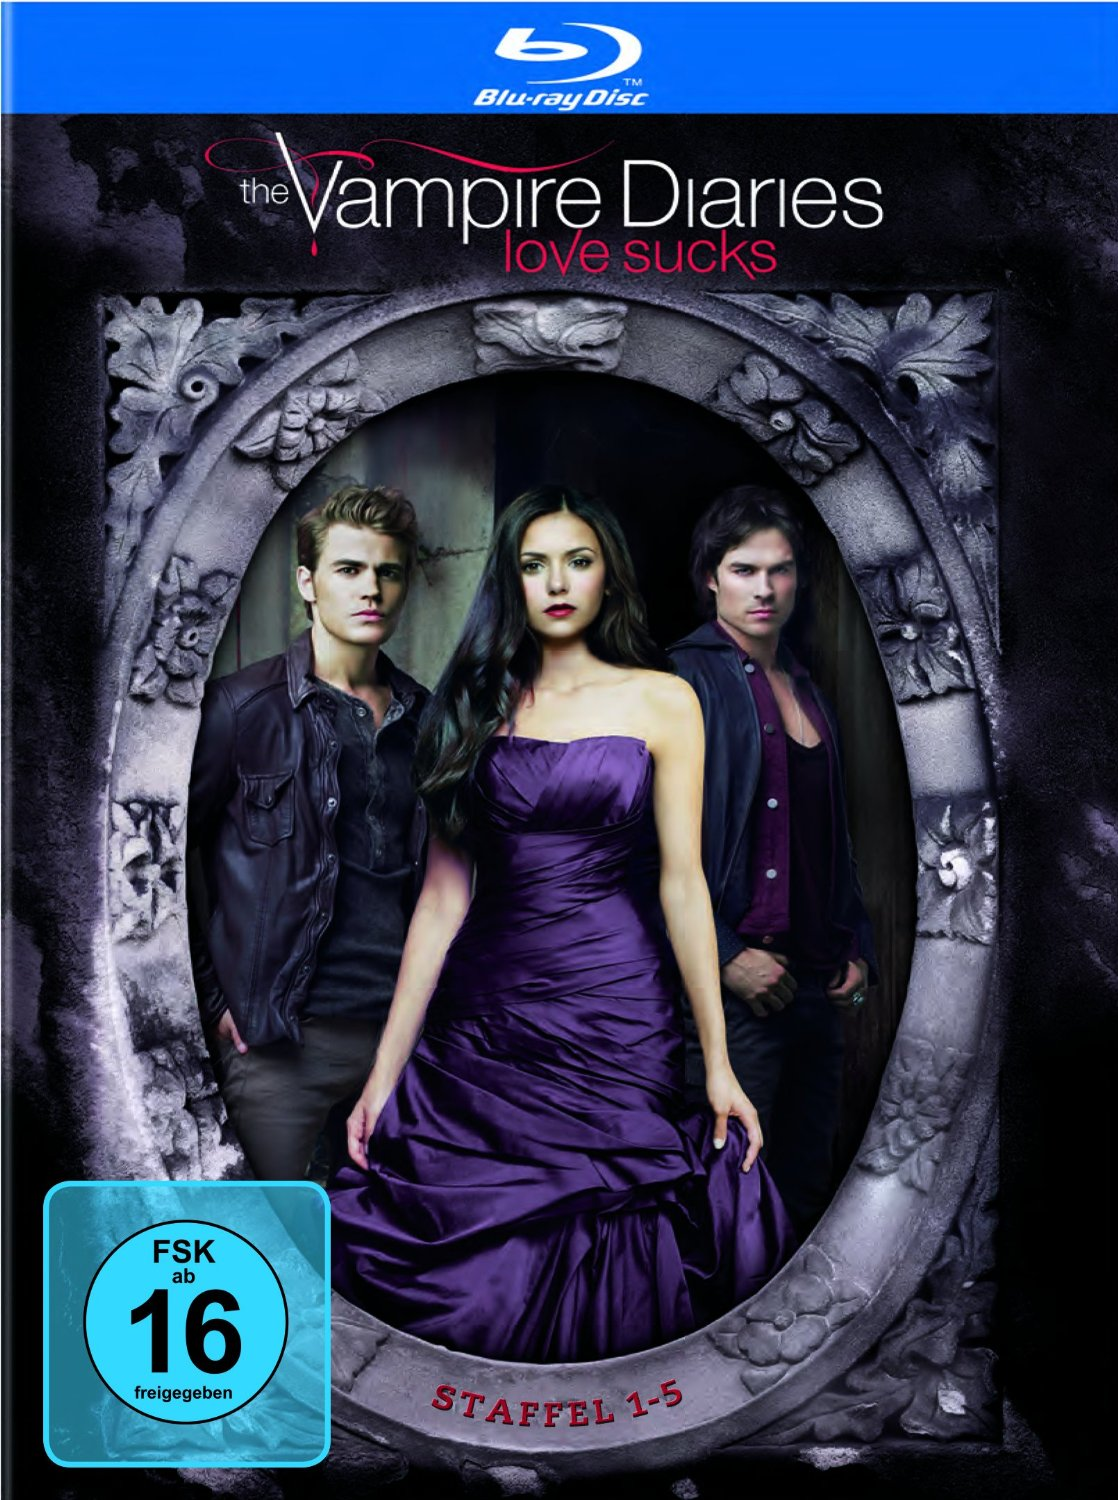 vampire diaries staffel 1 4 f r je 11 94 staffel 5 f r 13 94 vsk bluray. Black Bedroom Furniture Sets. Home Design Ideas